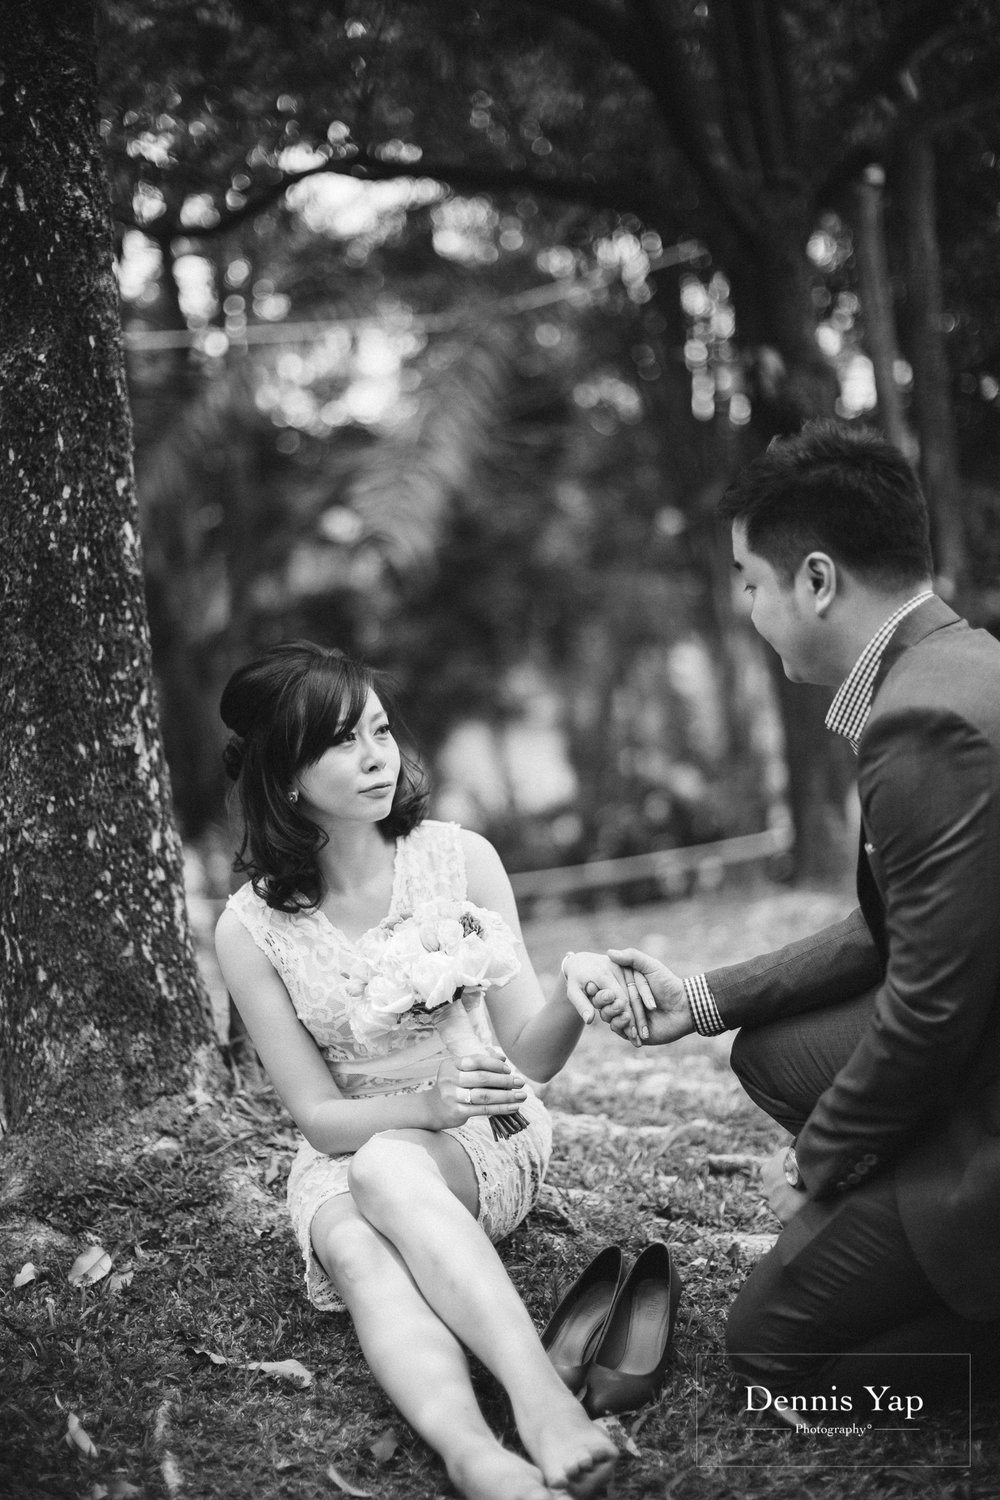 jacky kerry registration of marriage ROM dennis yap photography-8.jpg